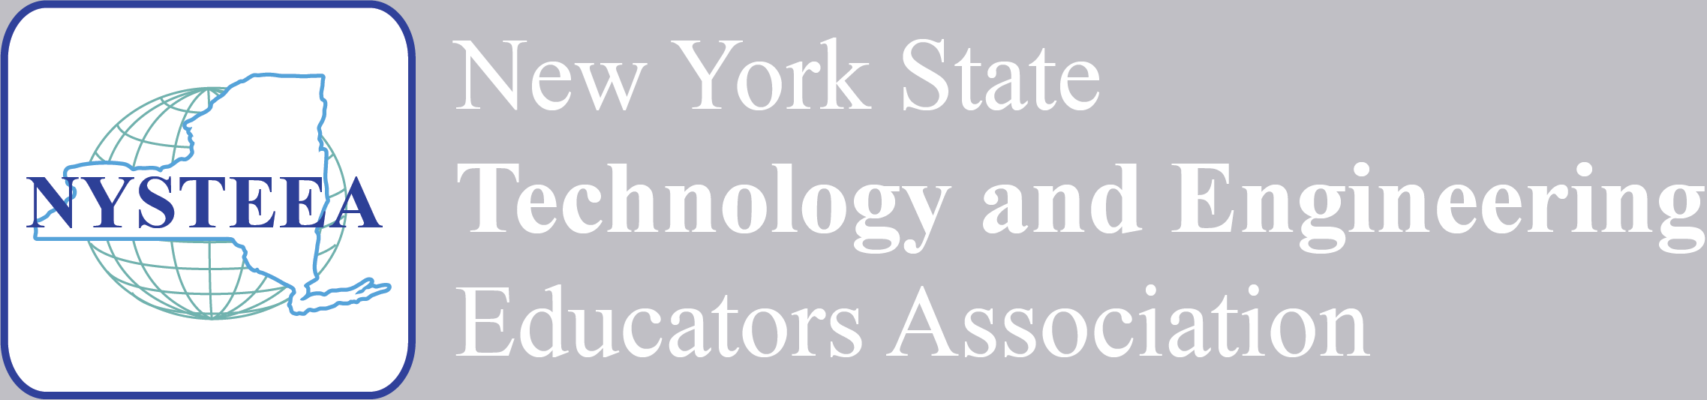 New York State Technology and Engineering Educators' Association (NYSTEEA) logo